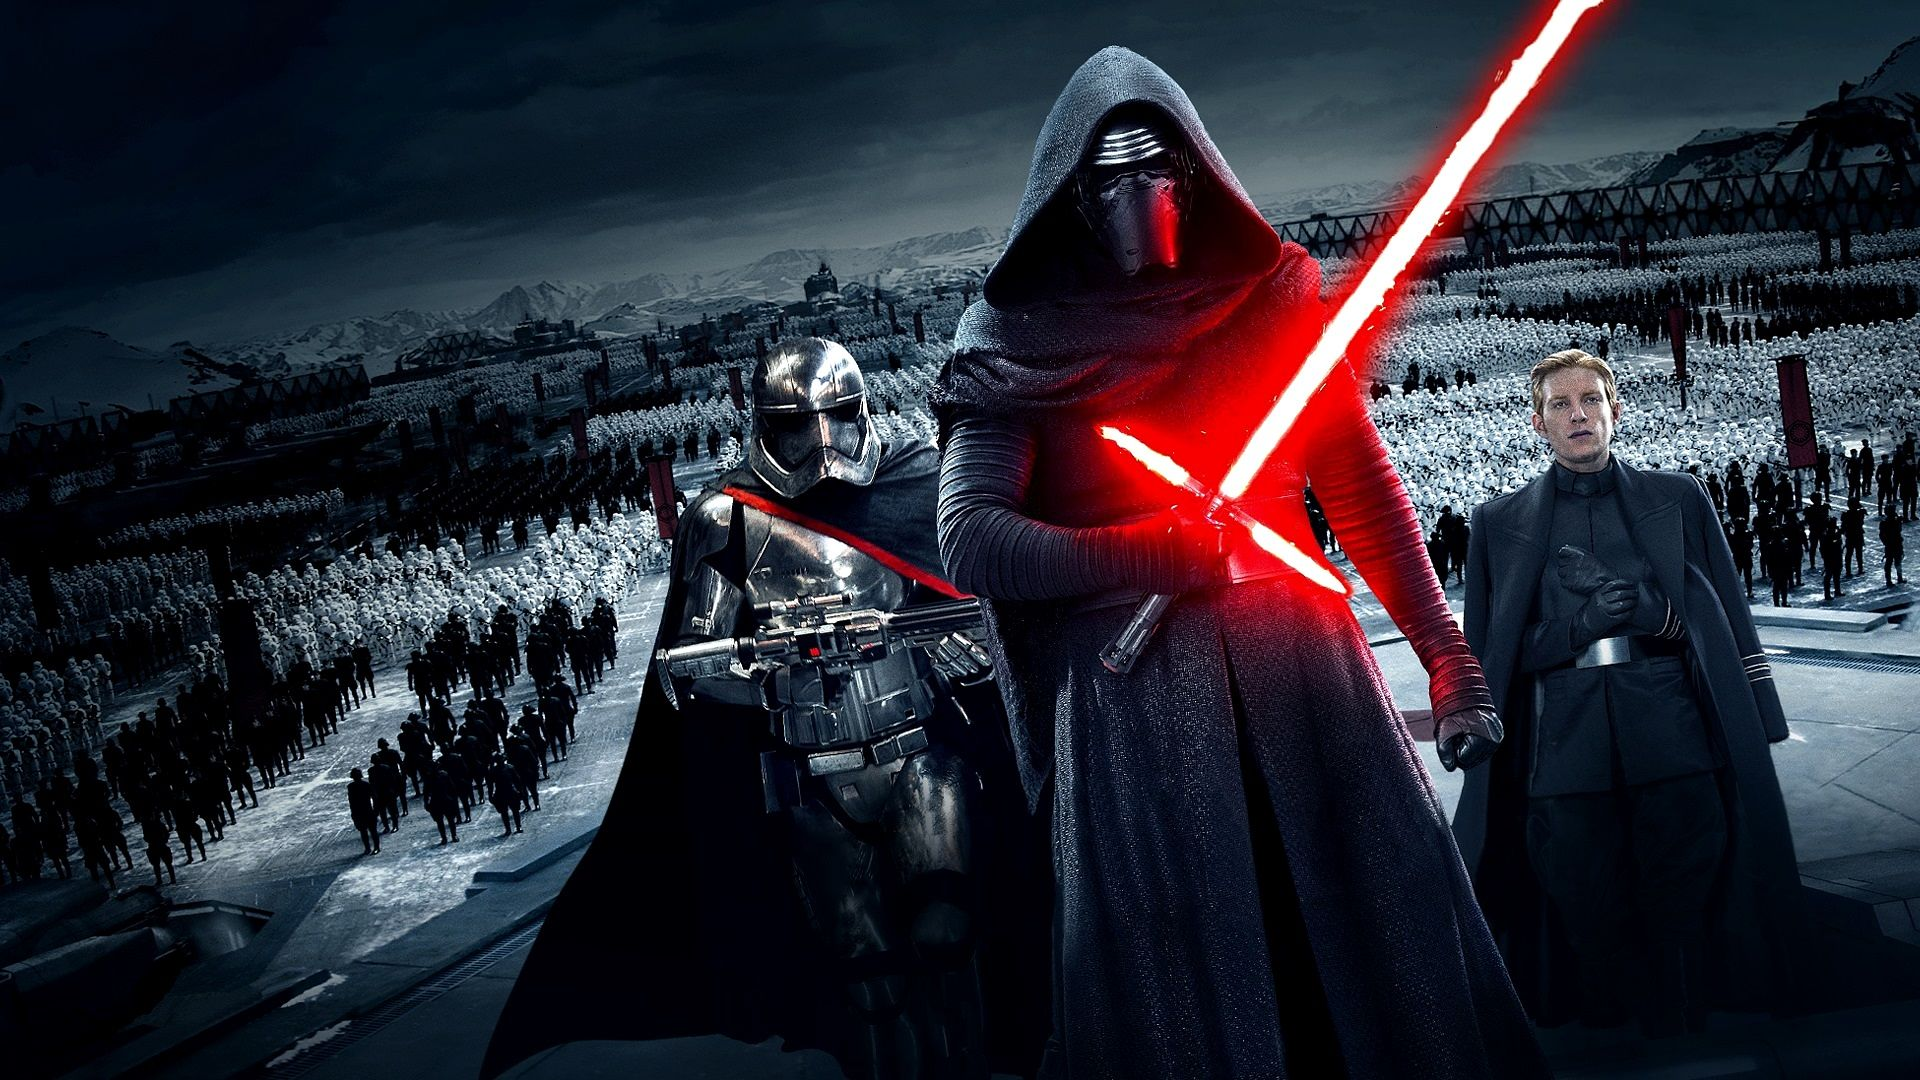 Star Wars 7 The Force Awakens   Could Kylo Ren Really Be A 1920x1080